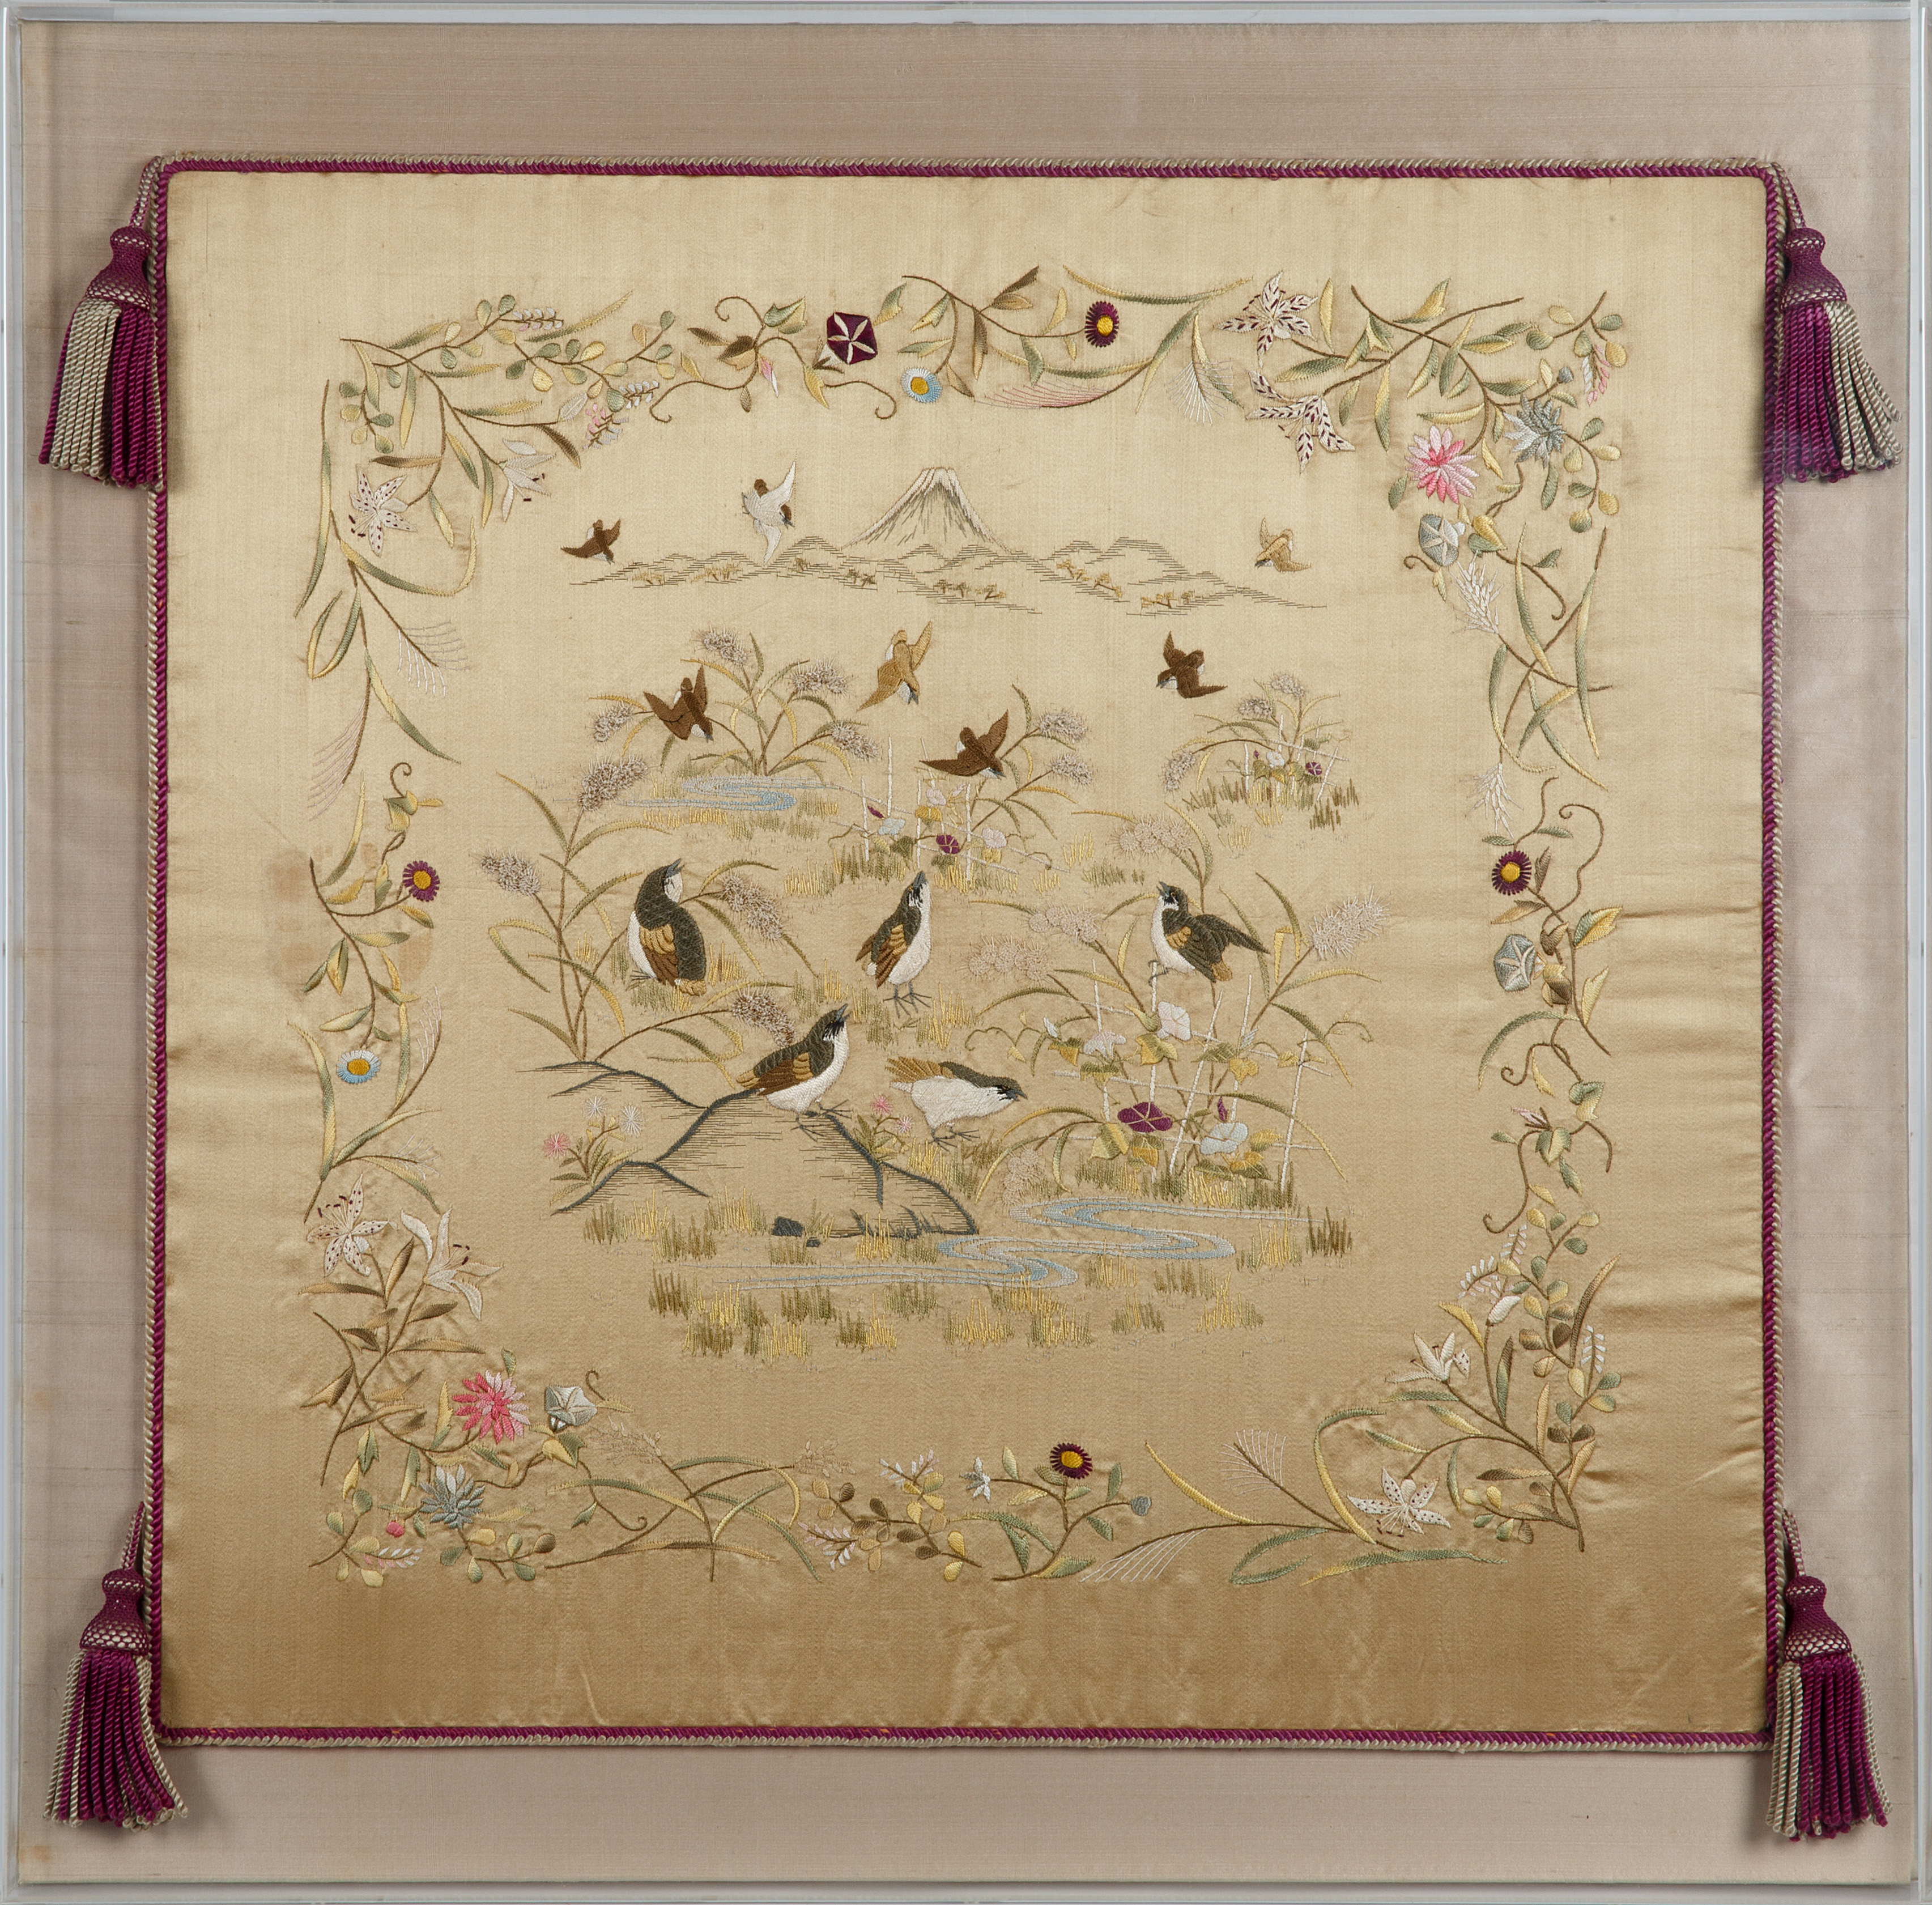 JAPANESE-STYLE FLOWER AND BIRD SILK EMBROIDERY - Image 3 of 5